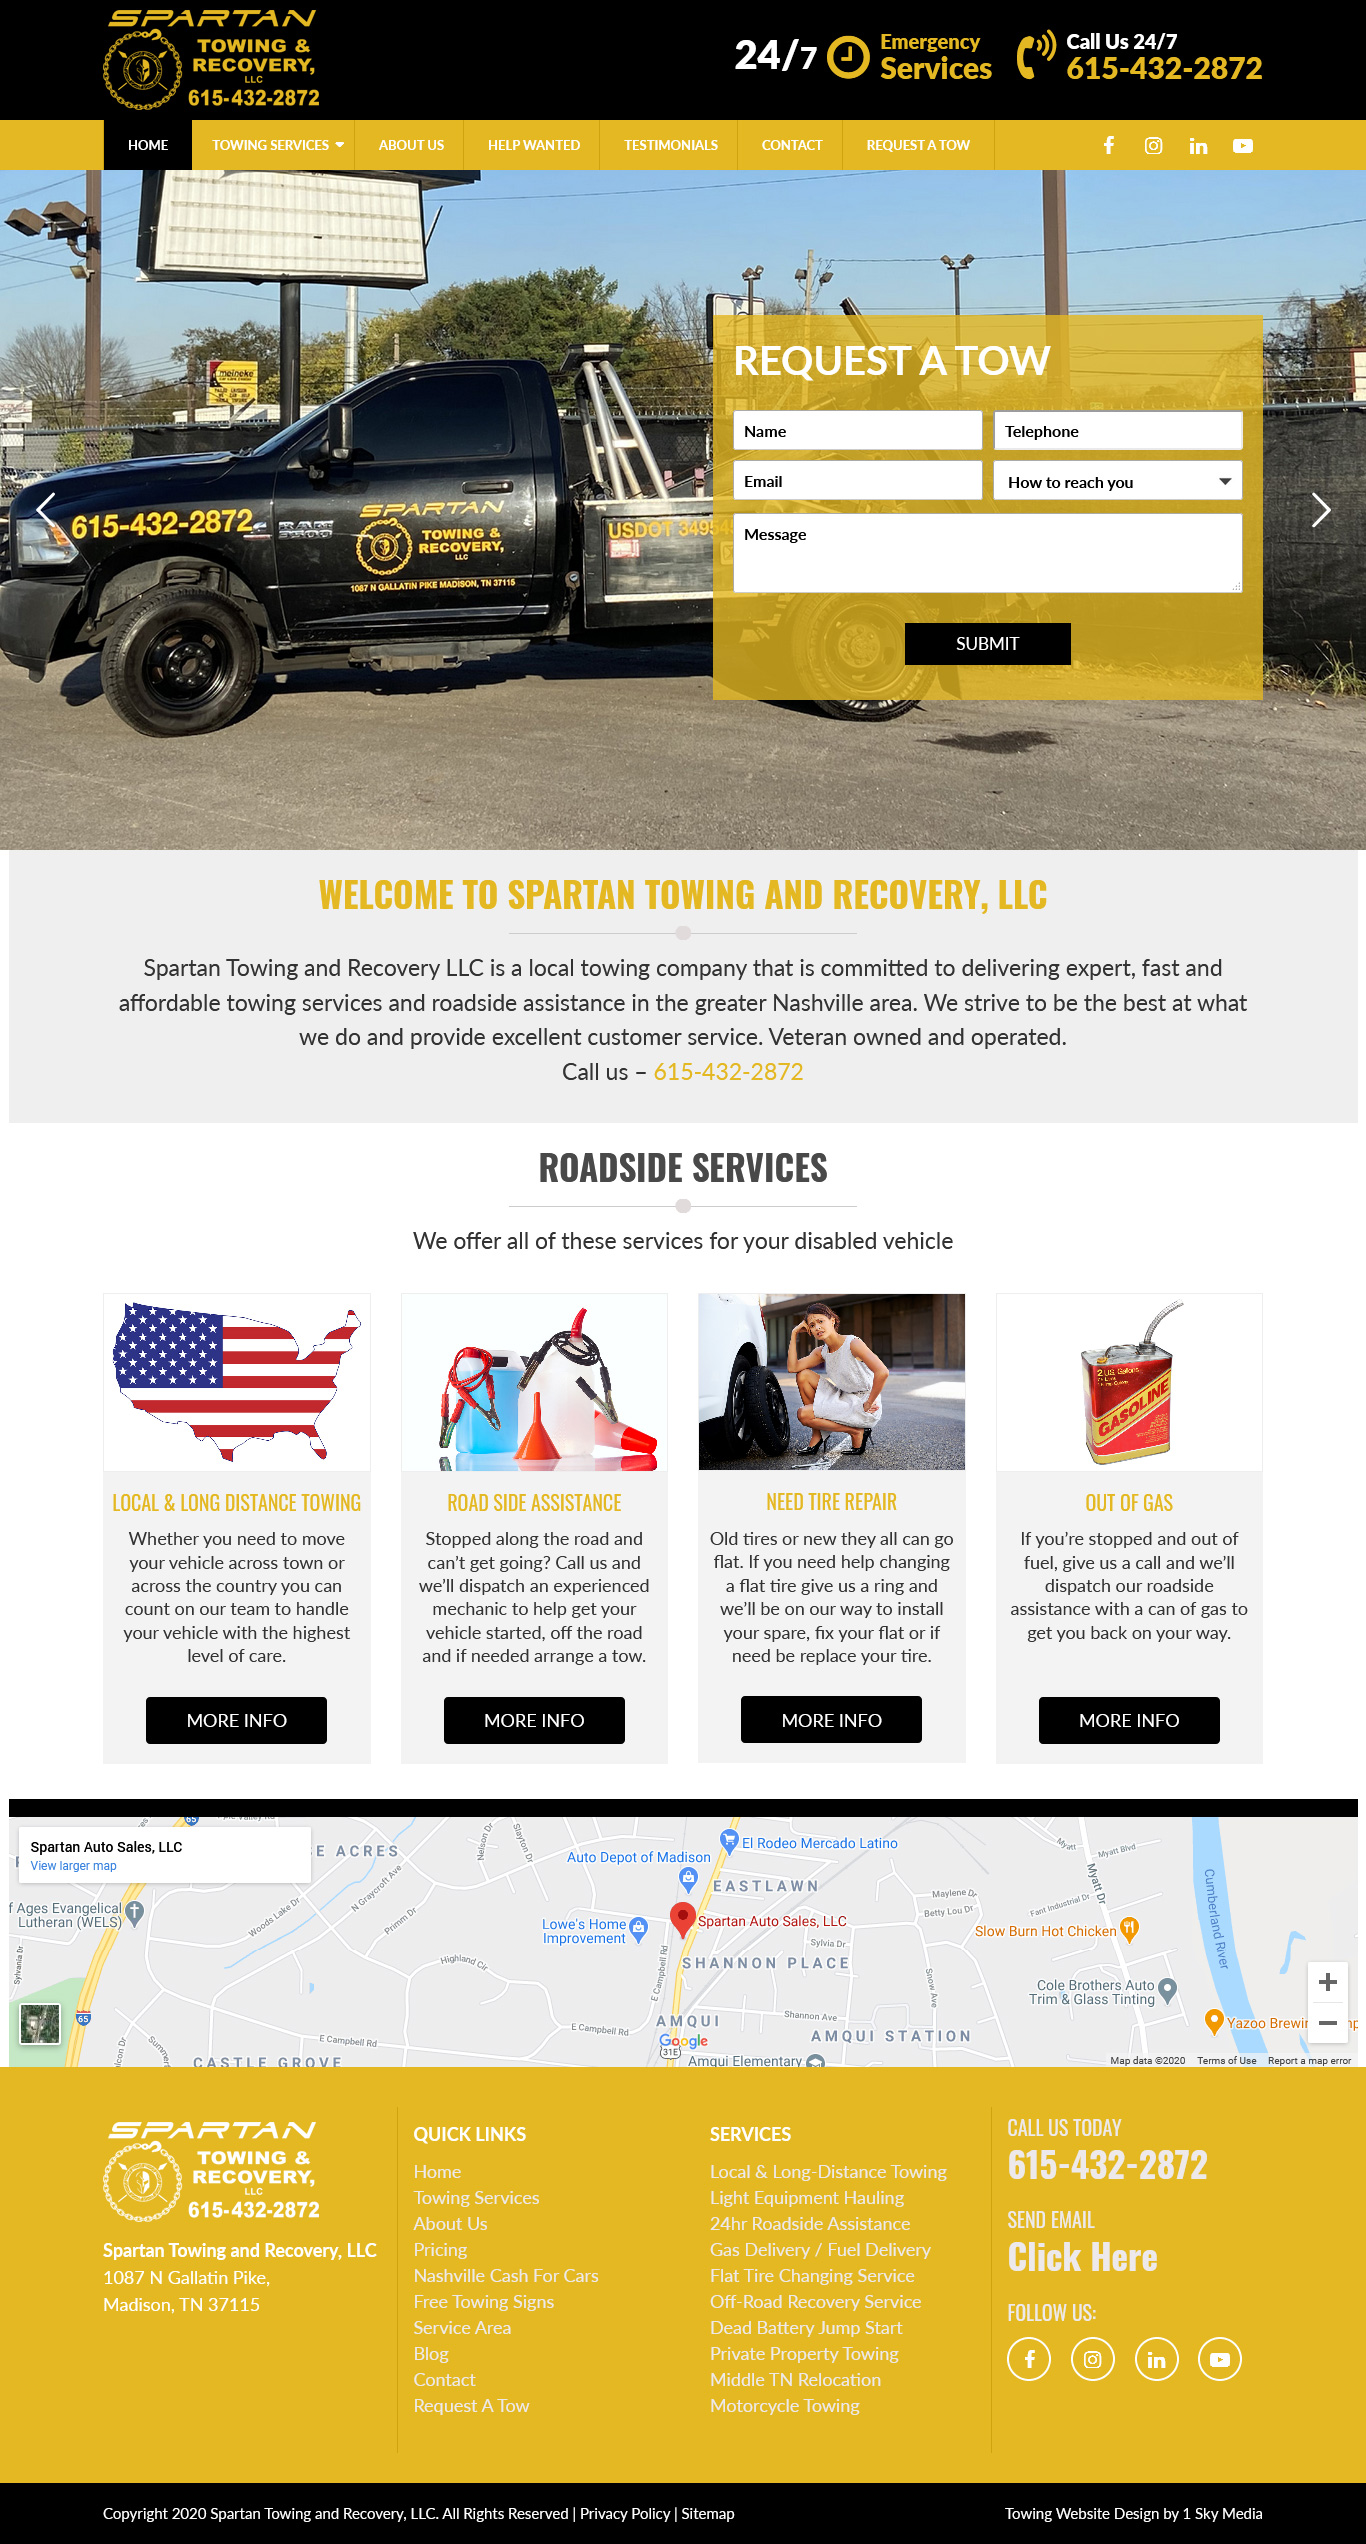 Spartan Towing and Recovery Website Design